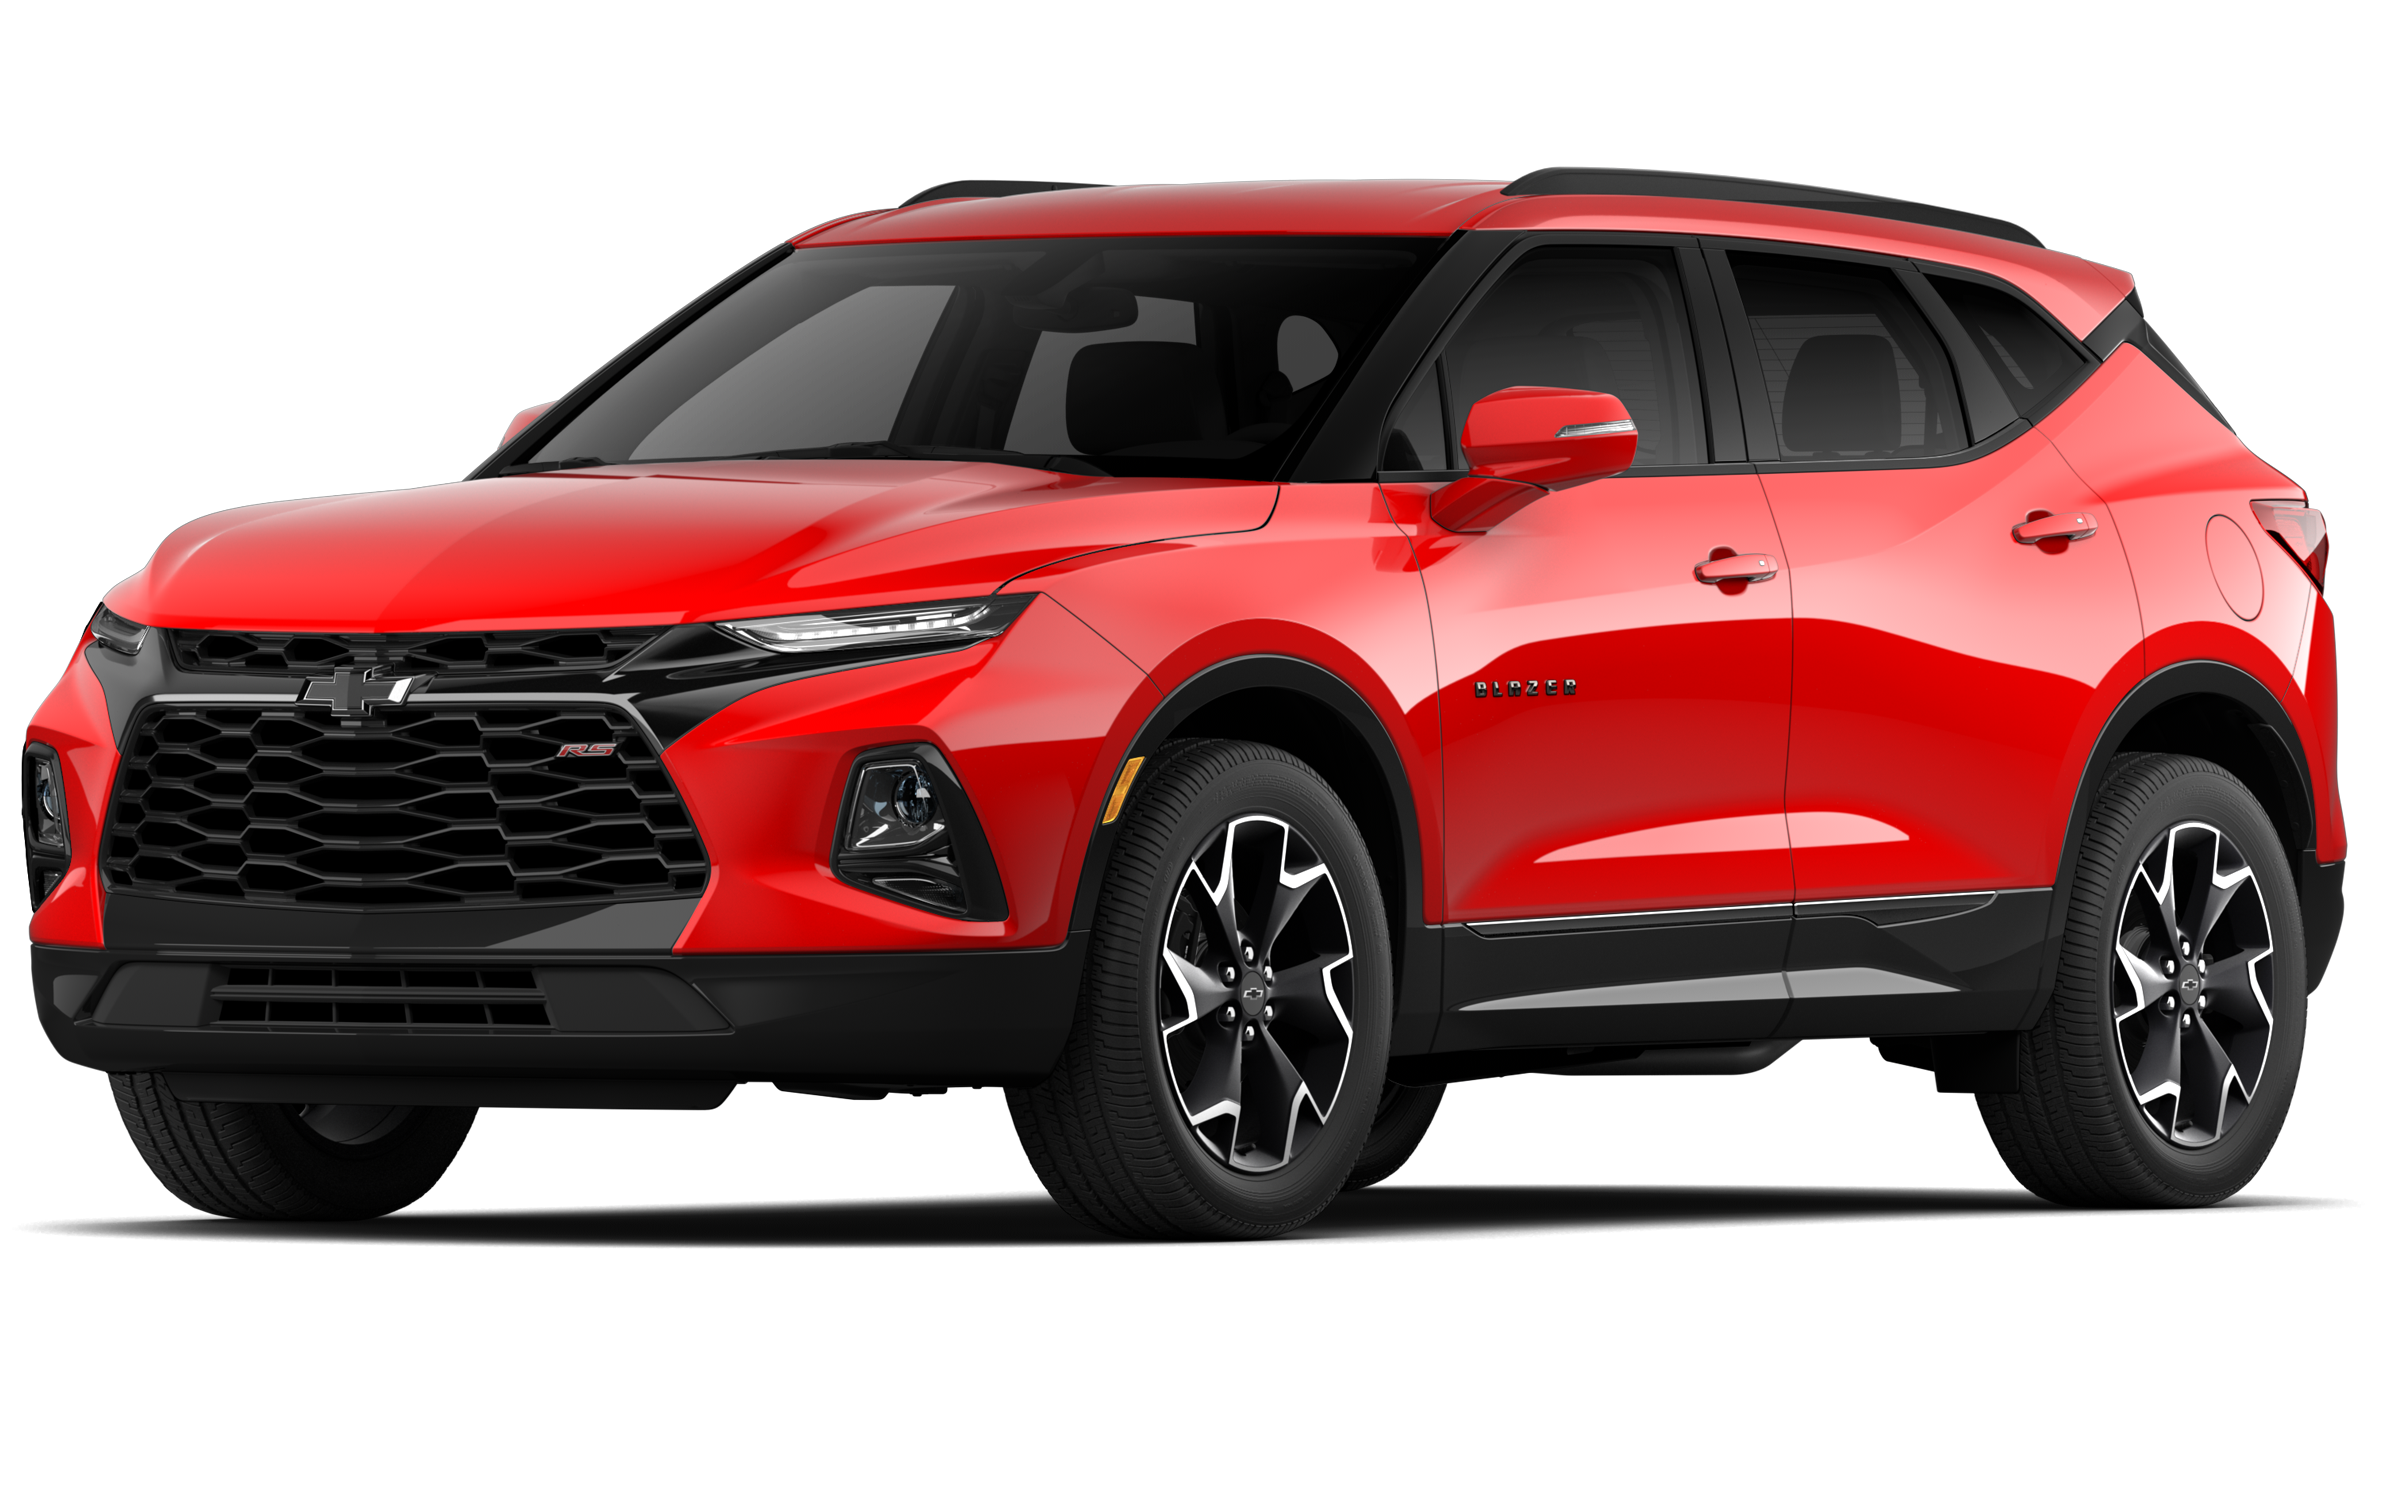 Chevrolet Blazer Lease Deals Specials Lease A Chevrolet